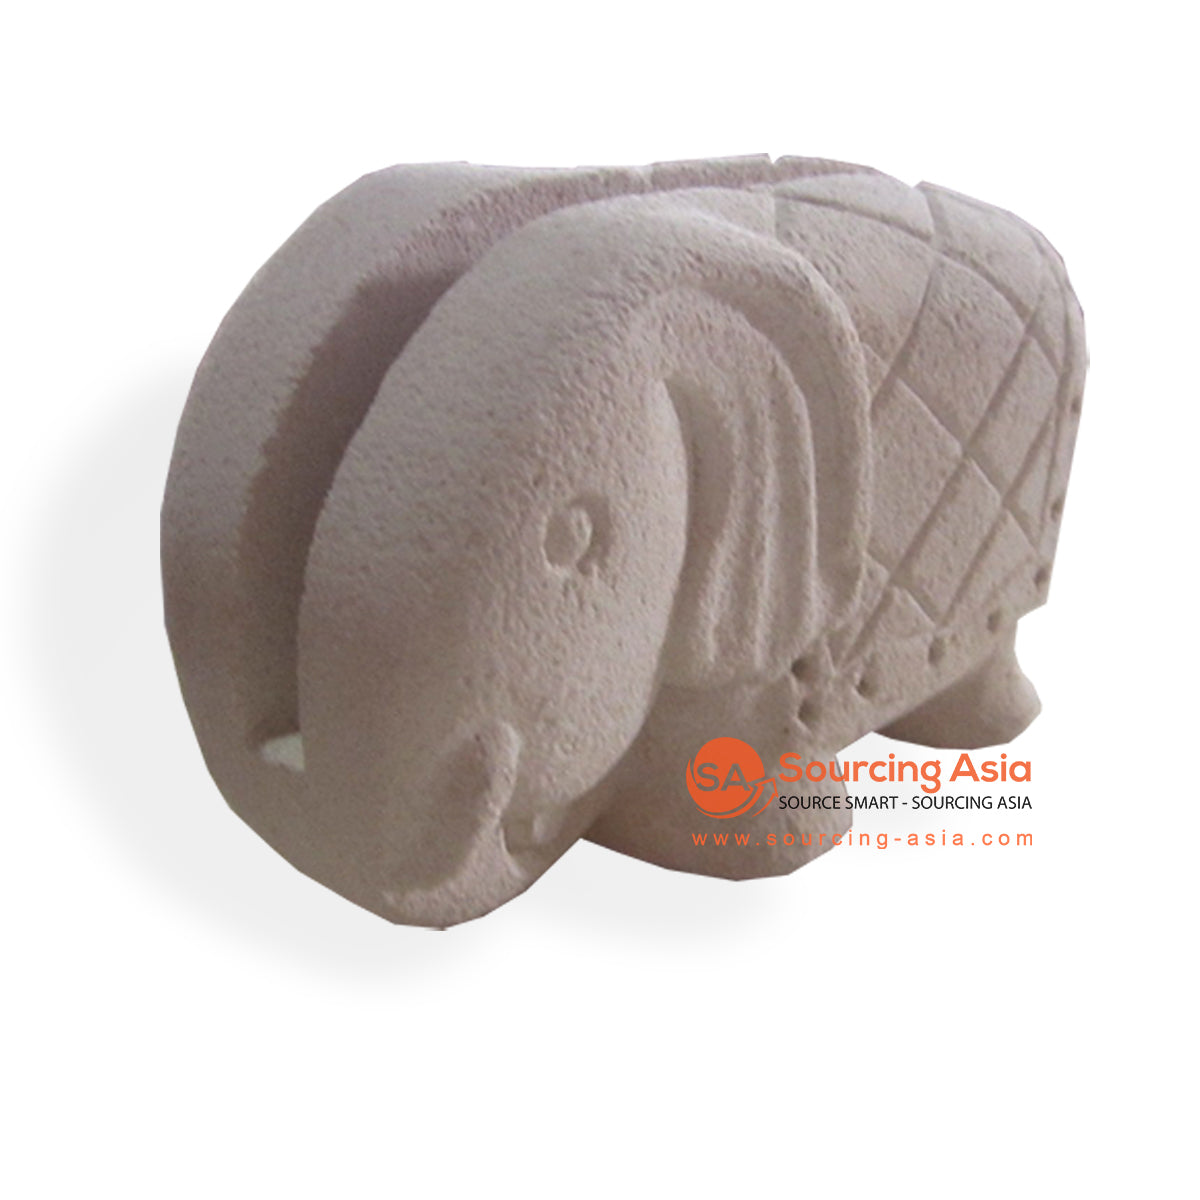 MHB118 ELEPHANT CARD HOLDER